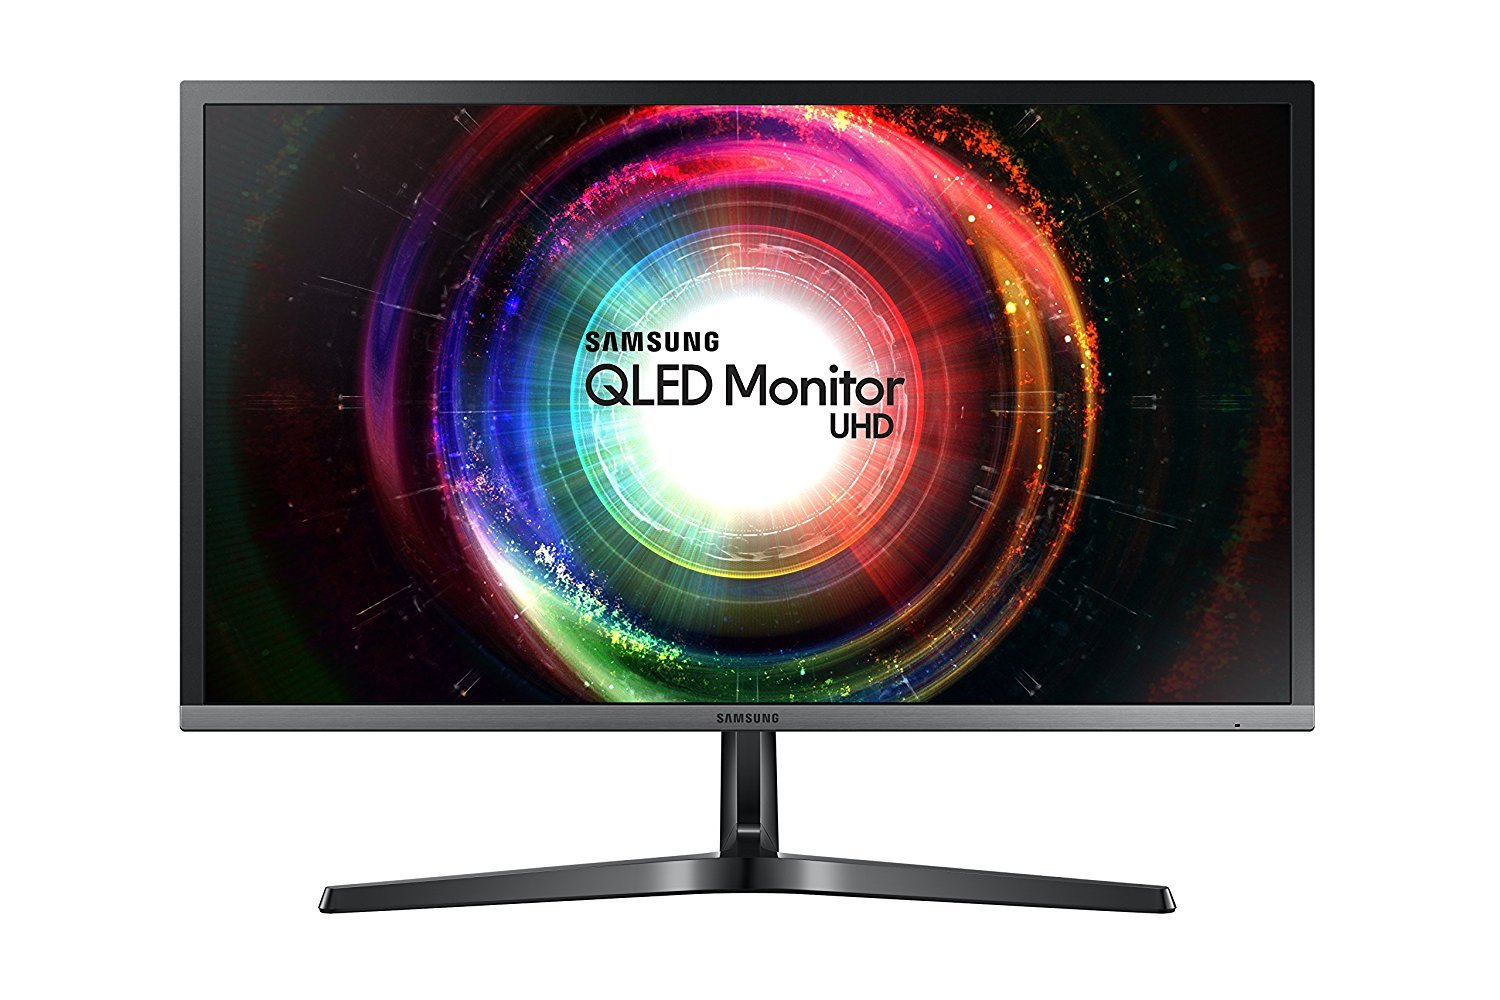 2018 Newest Premium Samsung 28'' 4K UHD (3840 x 2160) Widescreen LED Gaming/Professional Business Monitor - AR 16:9 Response 1ms Response Time 1.07B Color Support Game Mode AMD FreeSync HDMI